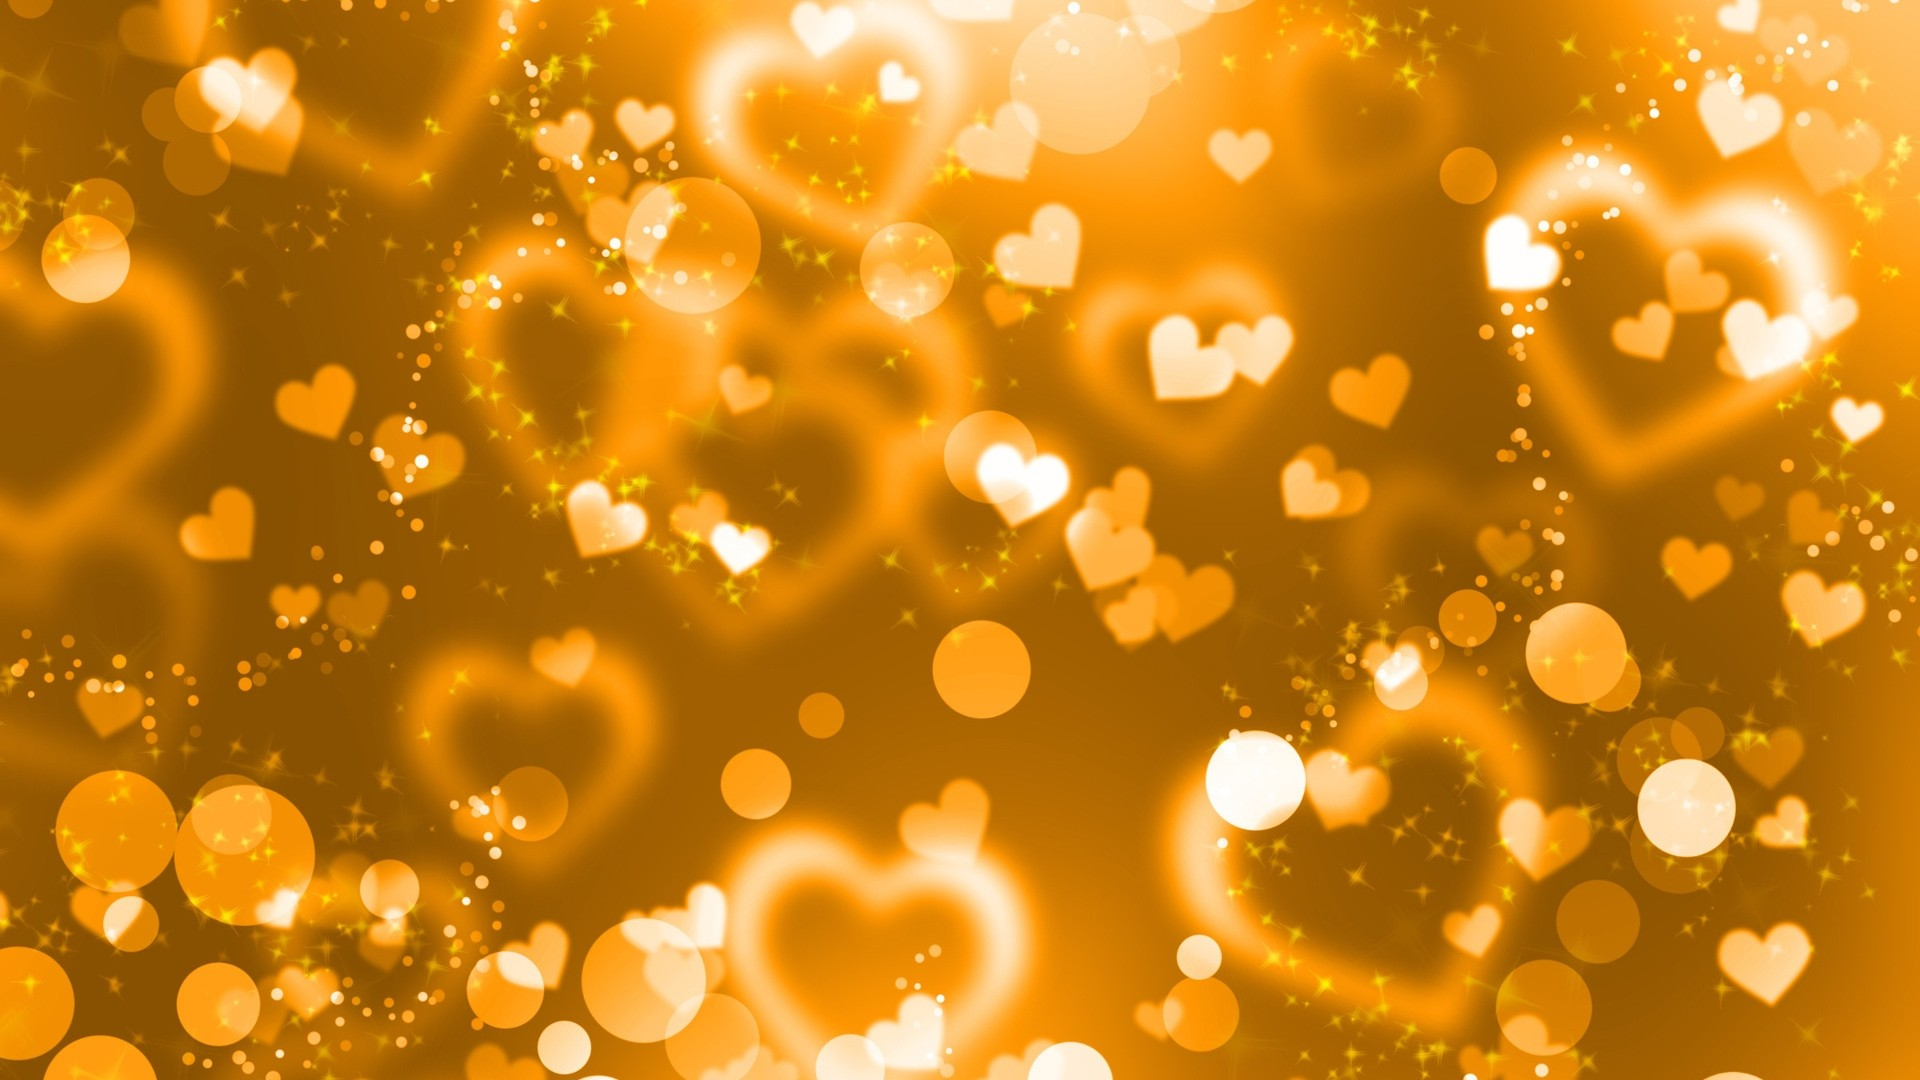 Preview wallpaper glare, hearts, lights, glitter, gold 1920×1080